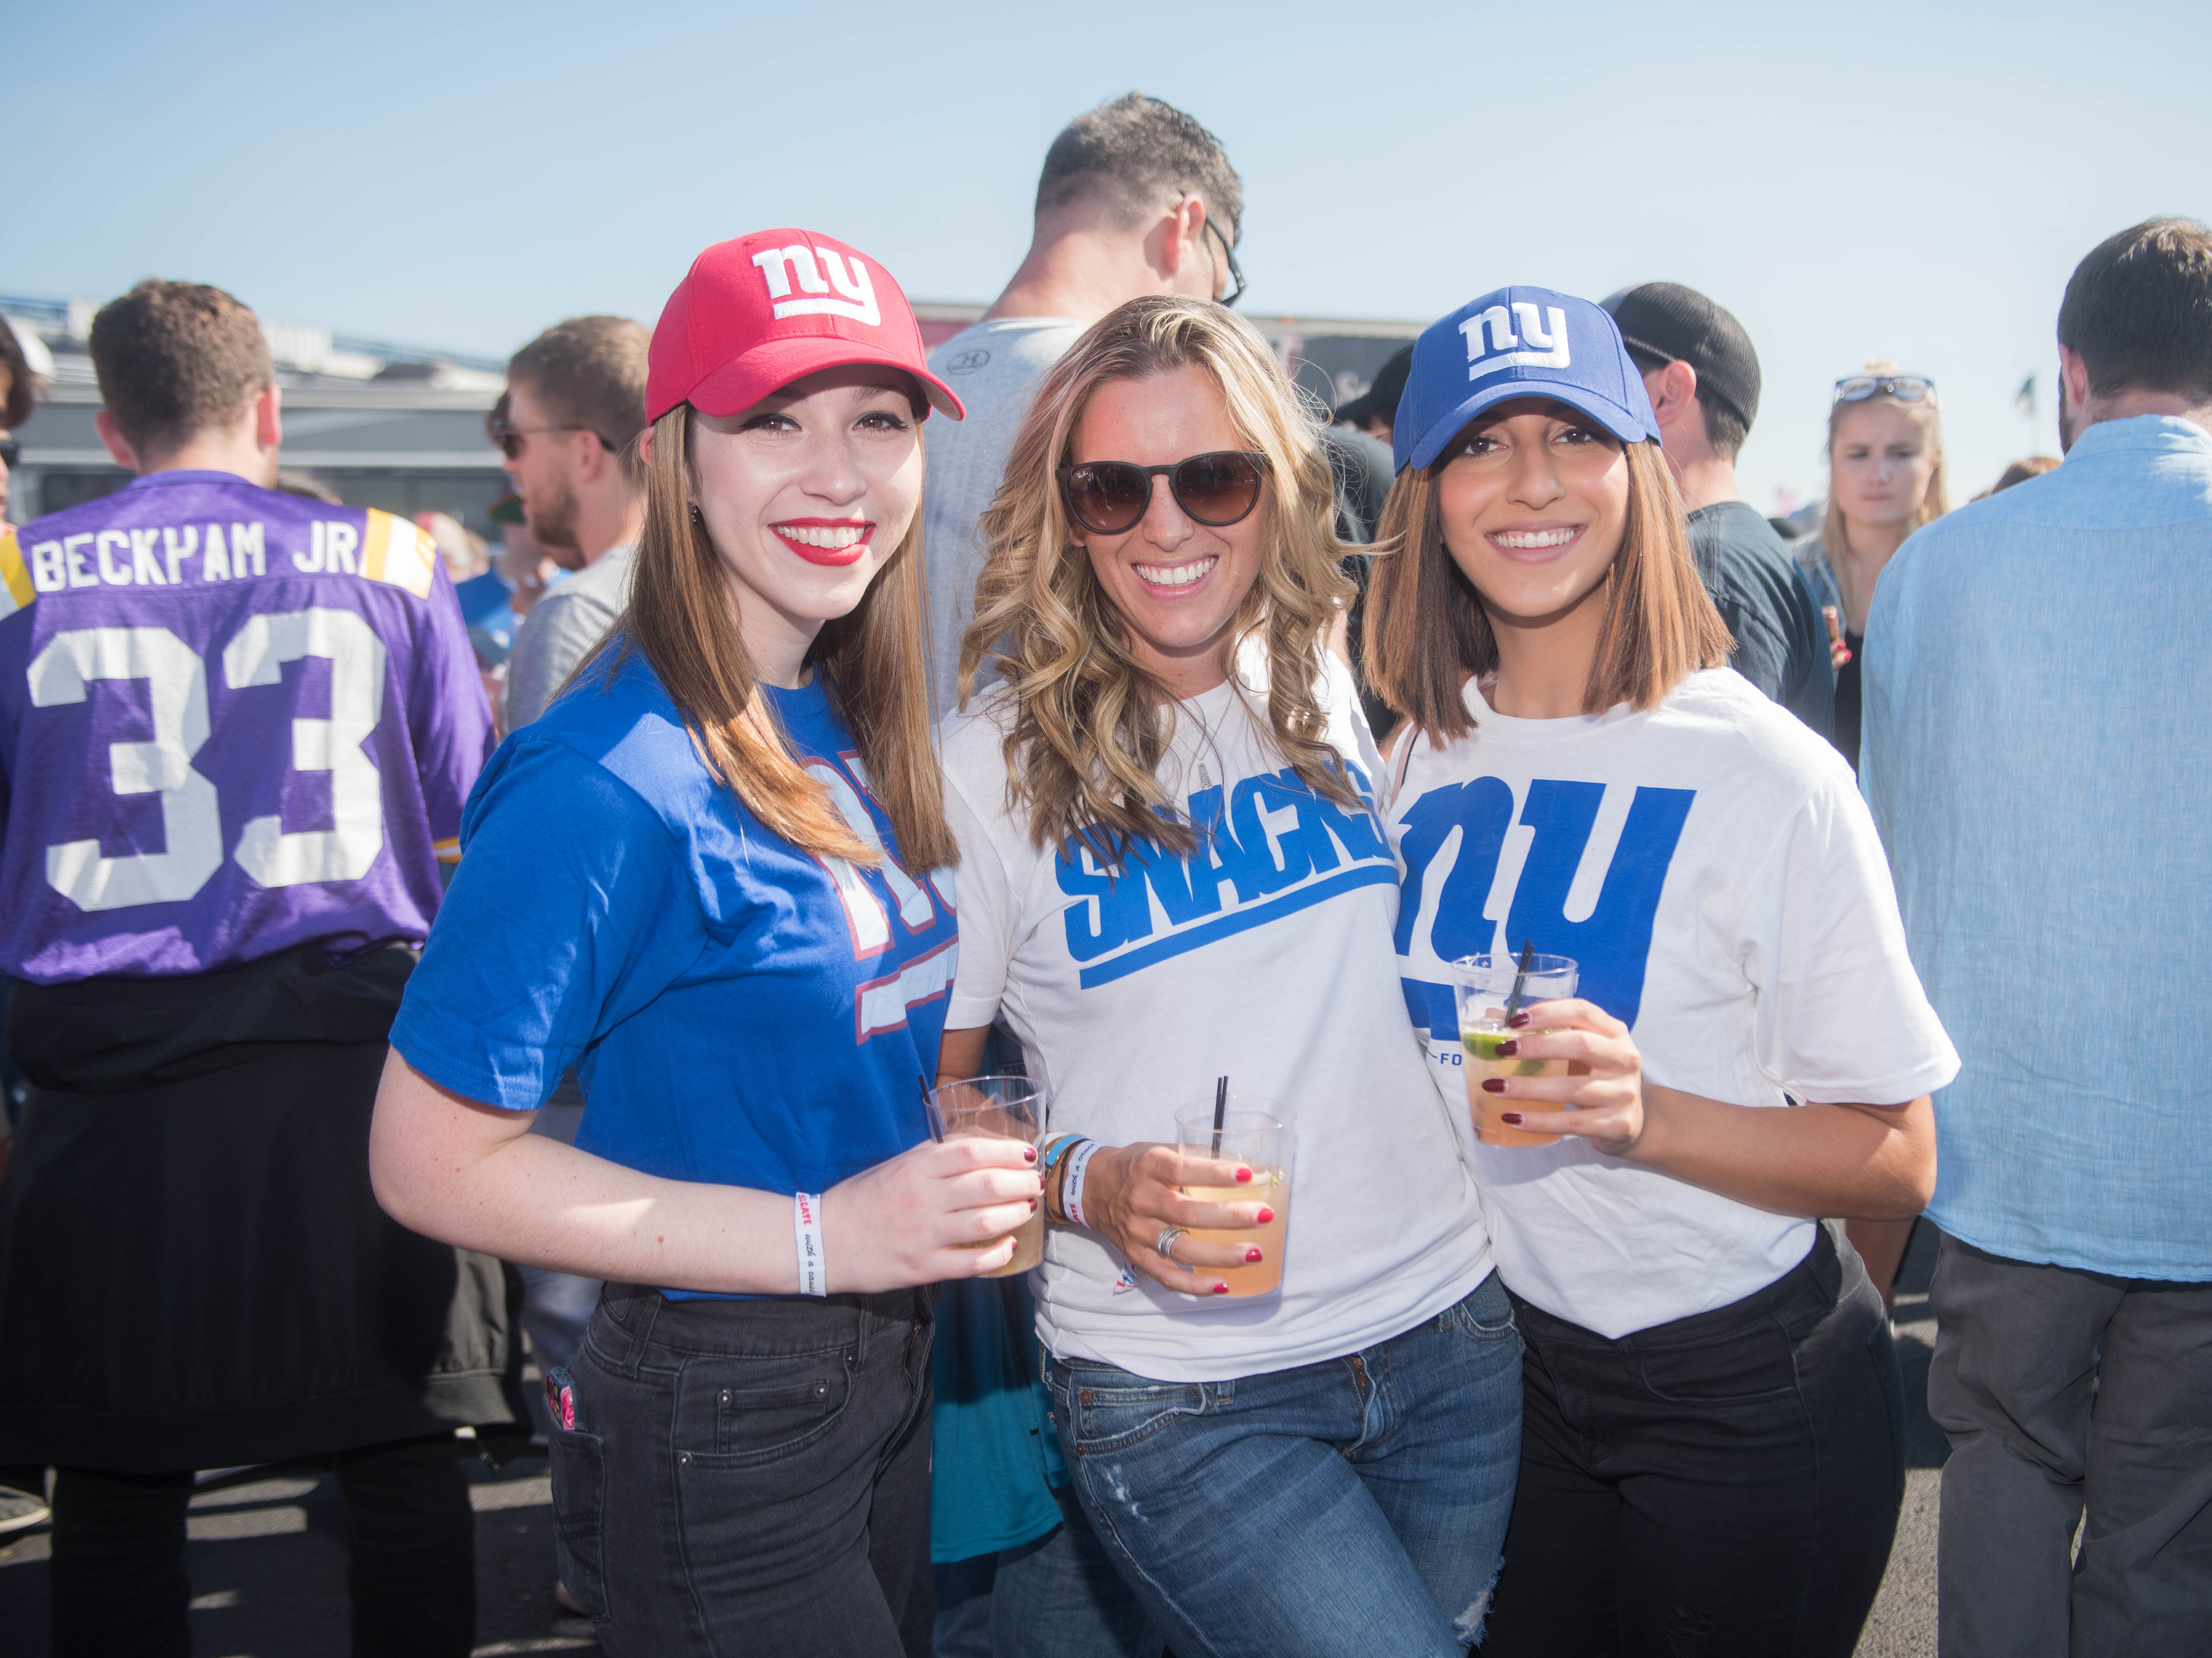 Ellie Rosen, Alyssa Marino and Ruby Sultan at the Giants vs. Saints tailgate party, Sunday, Sept. 30, 2018.